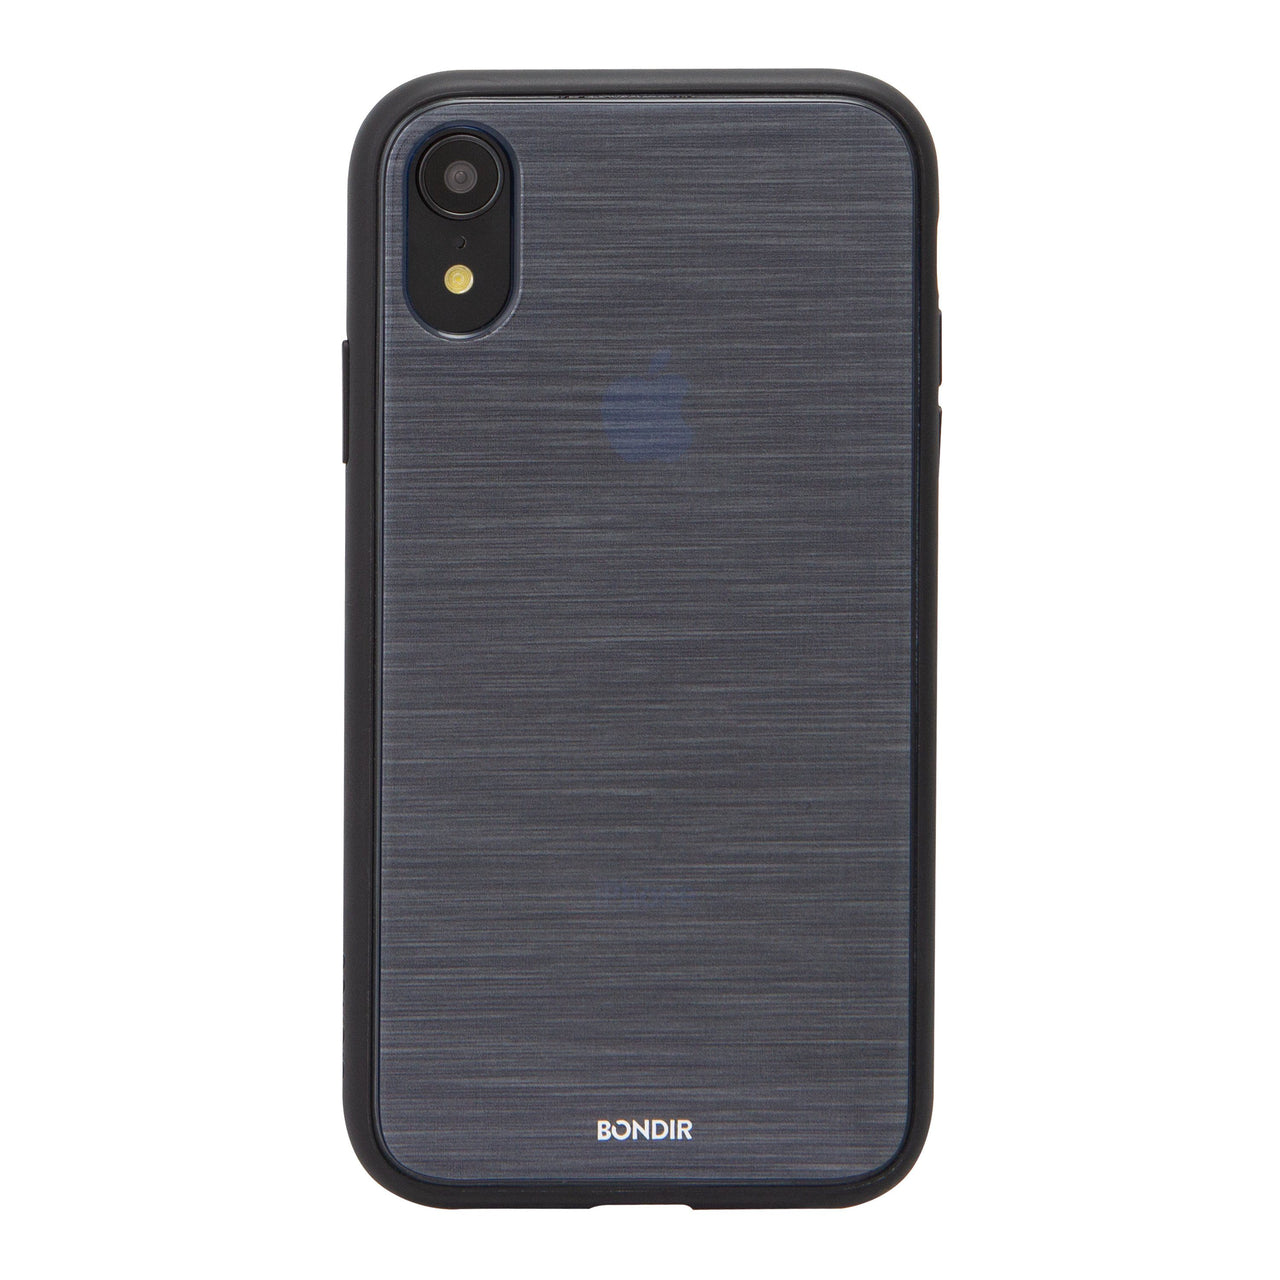 Case - Mist (Navy) Case, IPhone XR